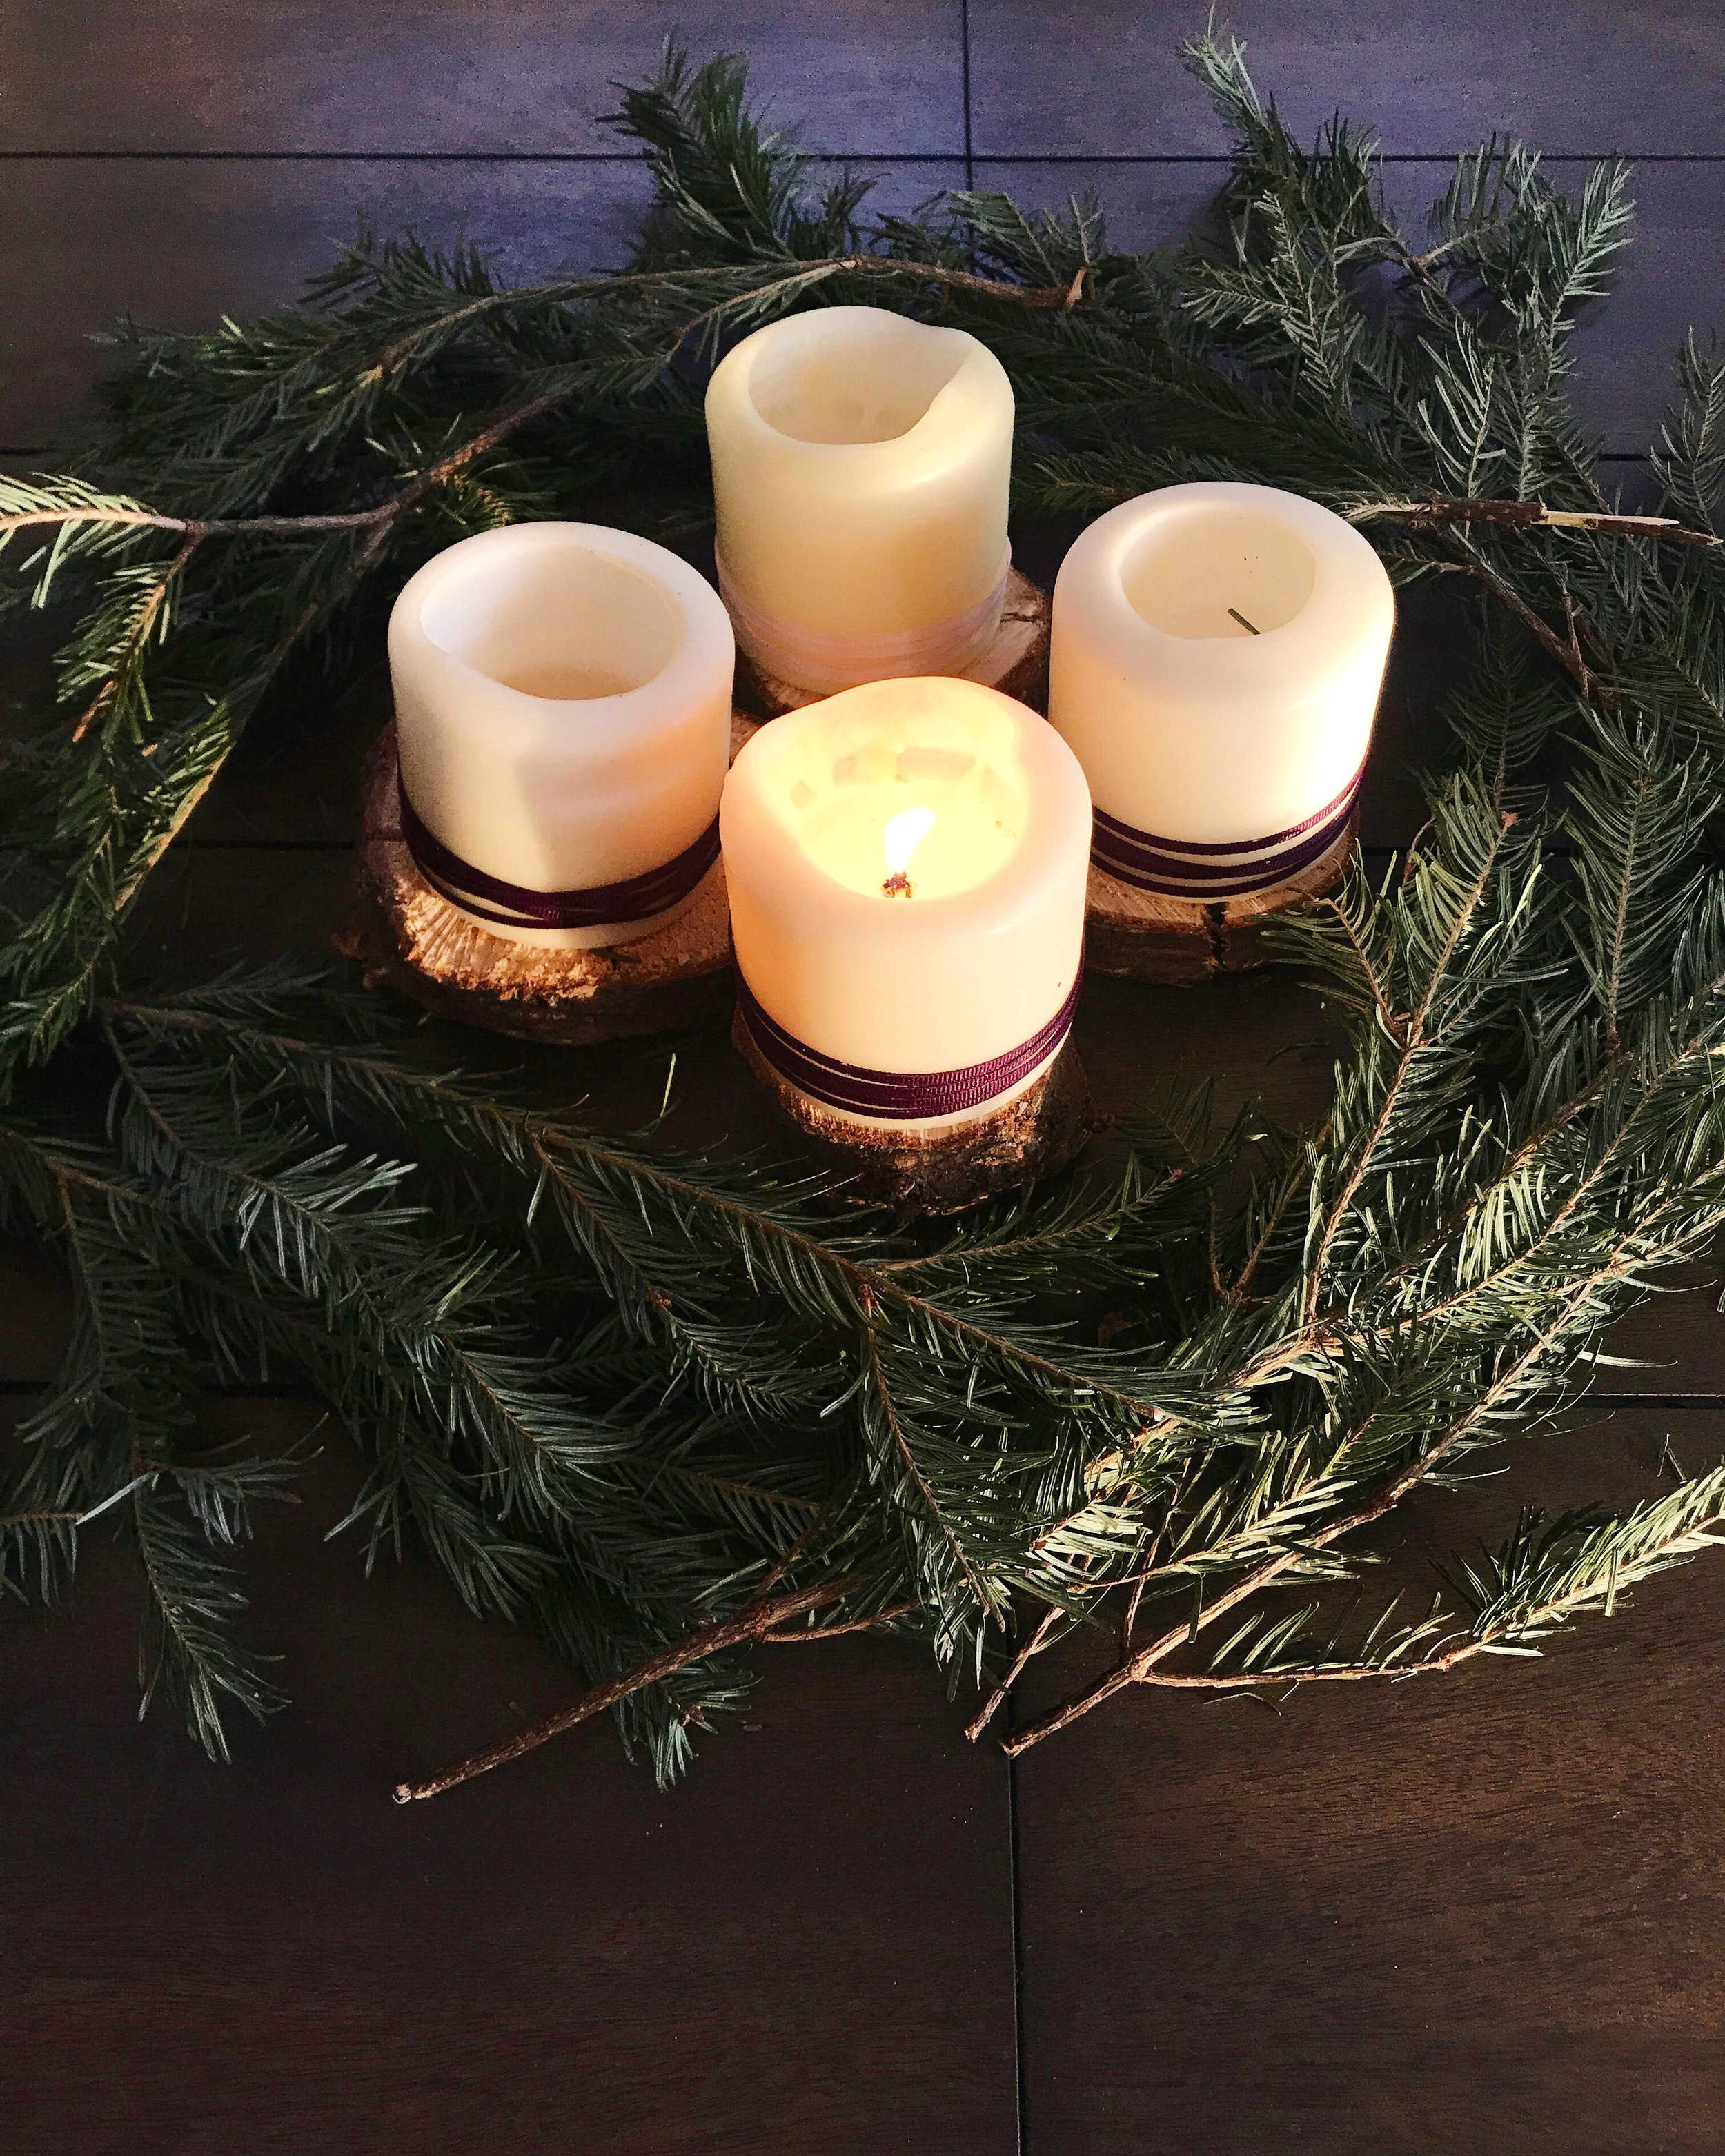 Here's our Advent wreath. When I went shopping for candles, I couldn't find pink and purple, so I improvised.